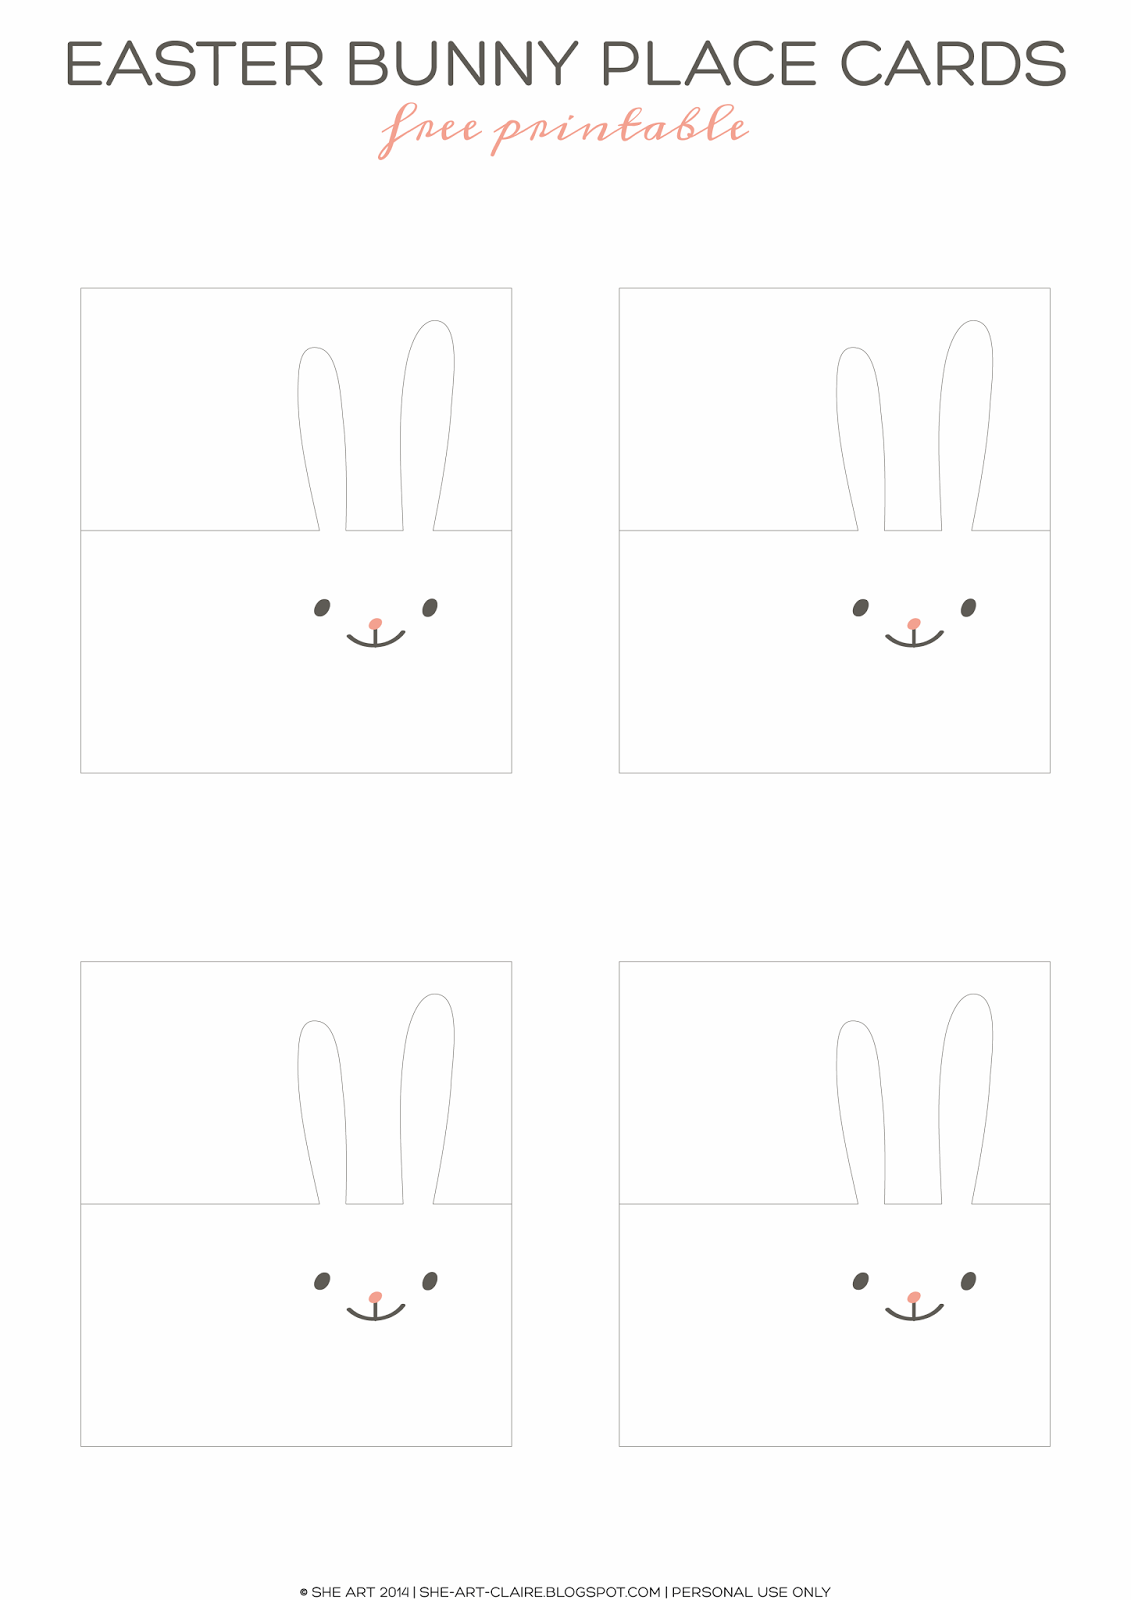 She Art Easter Party Mini Kit Bunny Place Cards Free Printable Tutorial Easter Party Easter Birthday Party Easter Birthday